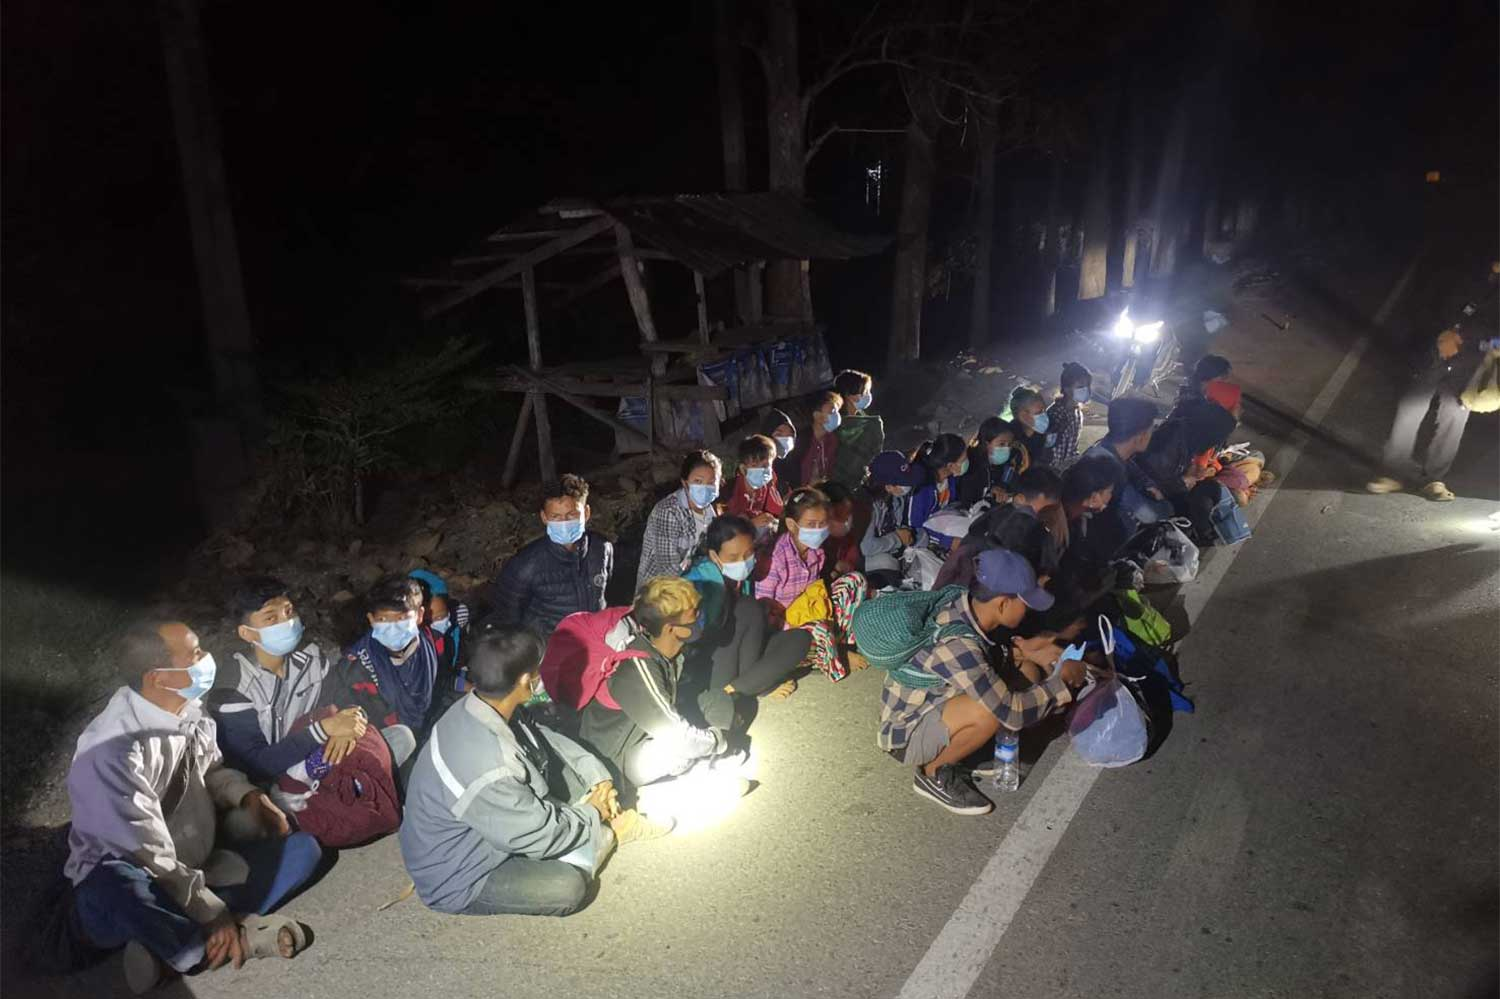 More Myanmar arrested for illegal entry, Thai guide caught